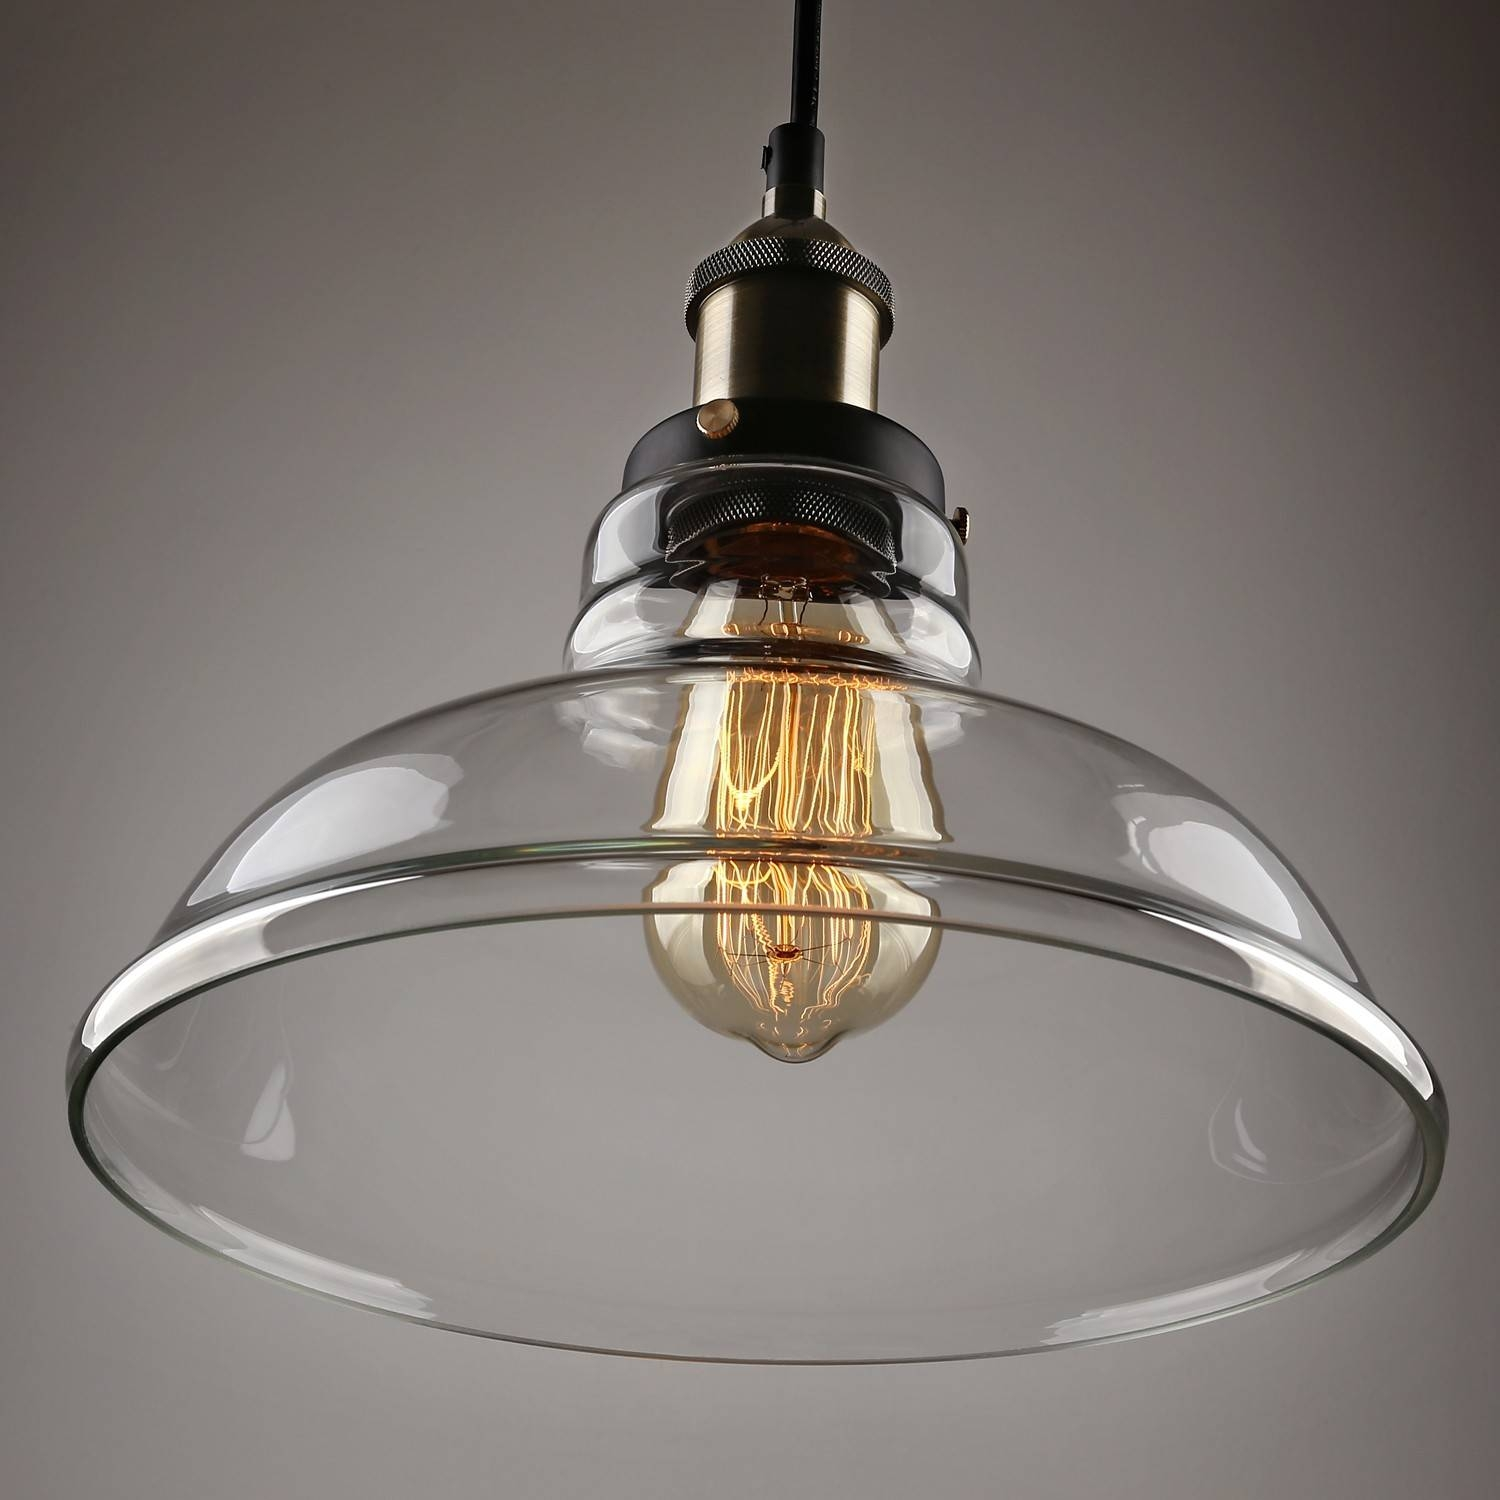 Pendant Lights : Luxurious Industrial Glass Light Ceiling Bedroom with Industrial Glass Pendant Lights (Image 12 of 15)